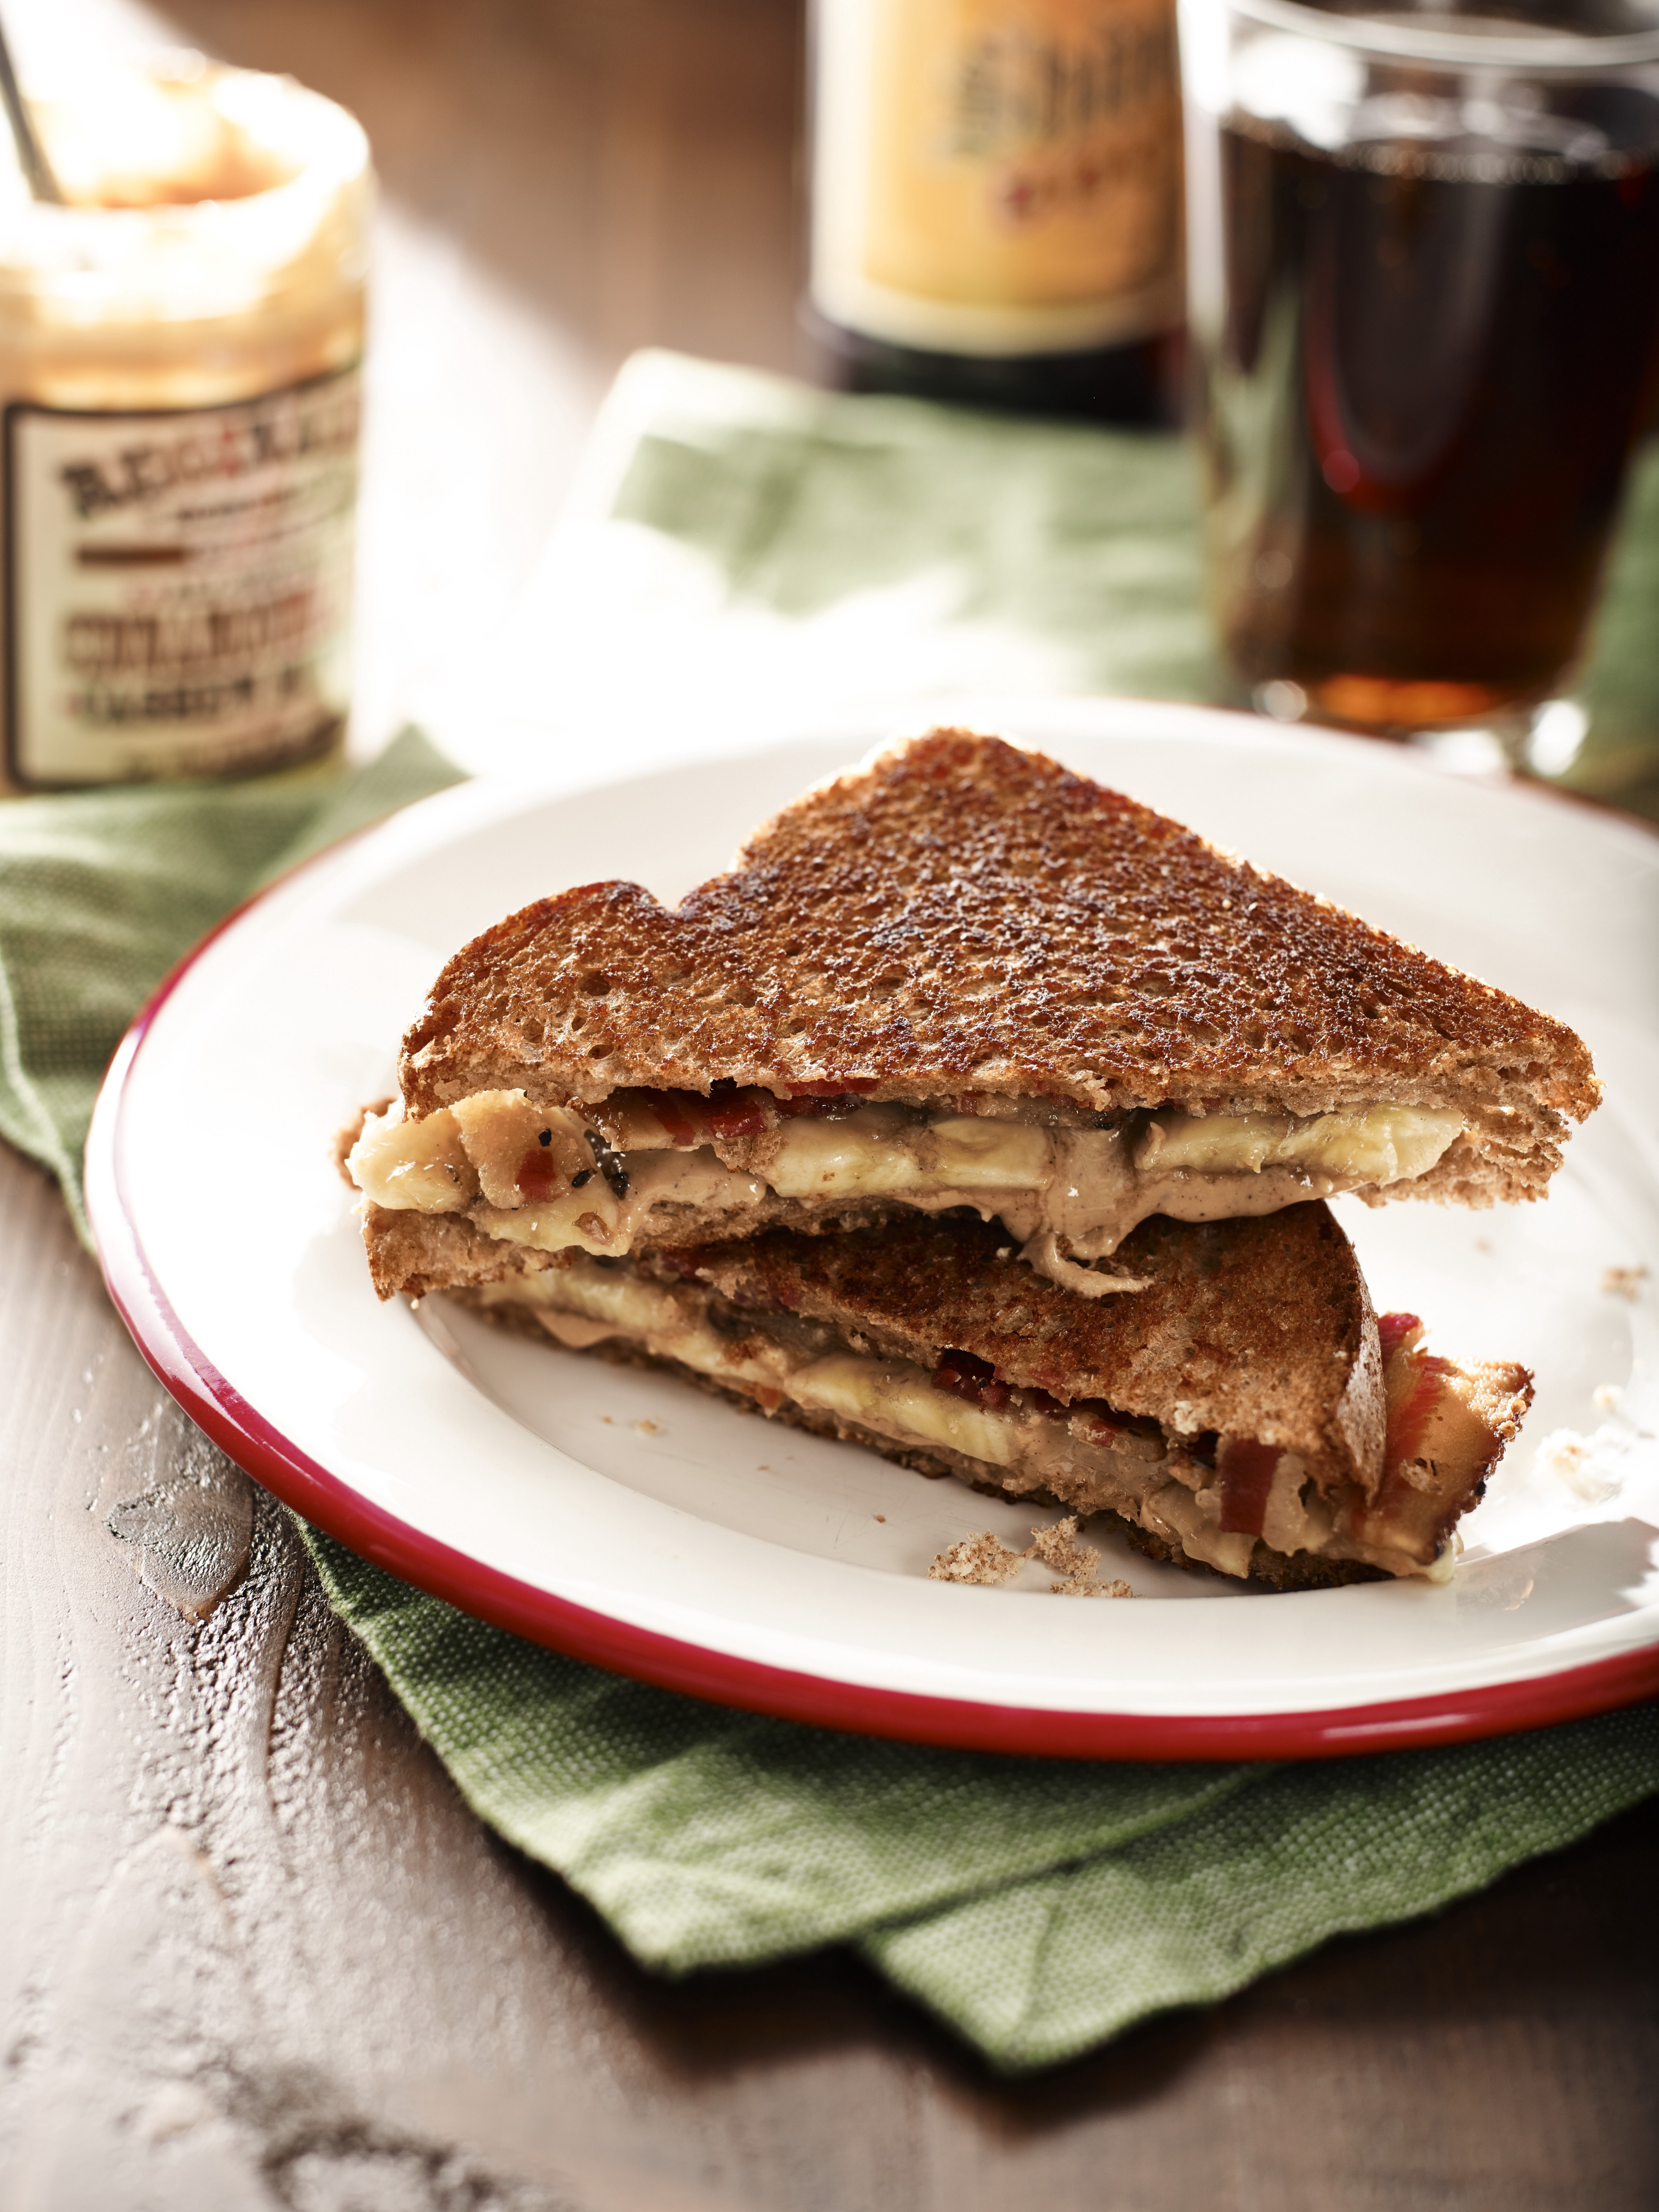 The Elvis Cashew Butter Banana Bacon Sandwich Recipe By Mantry Medium